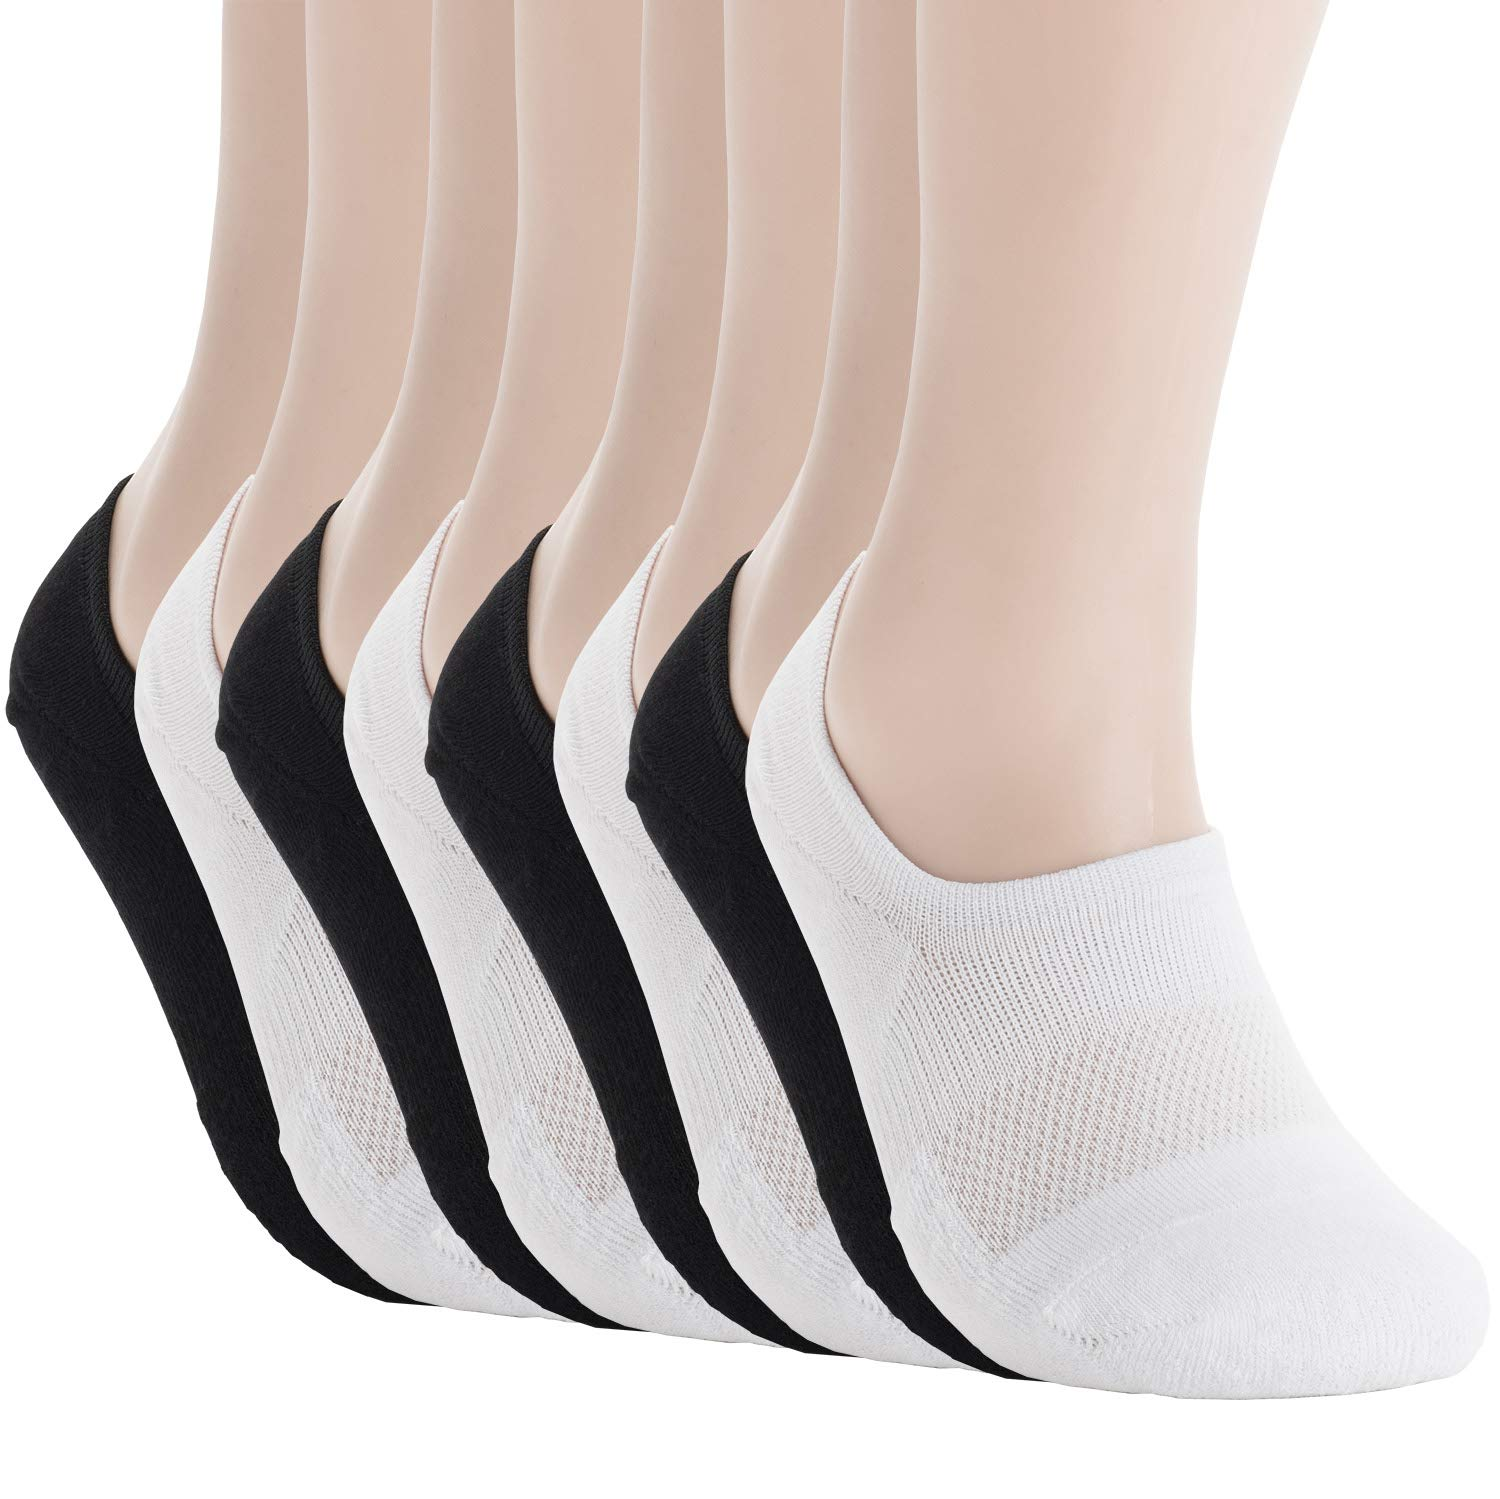 Pro Mountain Women's No Show Flat Cushion Cotton Footies Sneakers Sports Socks (S(US Women Shoes 5.5~7.5), White4 Black4 8pairs Pack S-size) by Pro Mountain